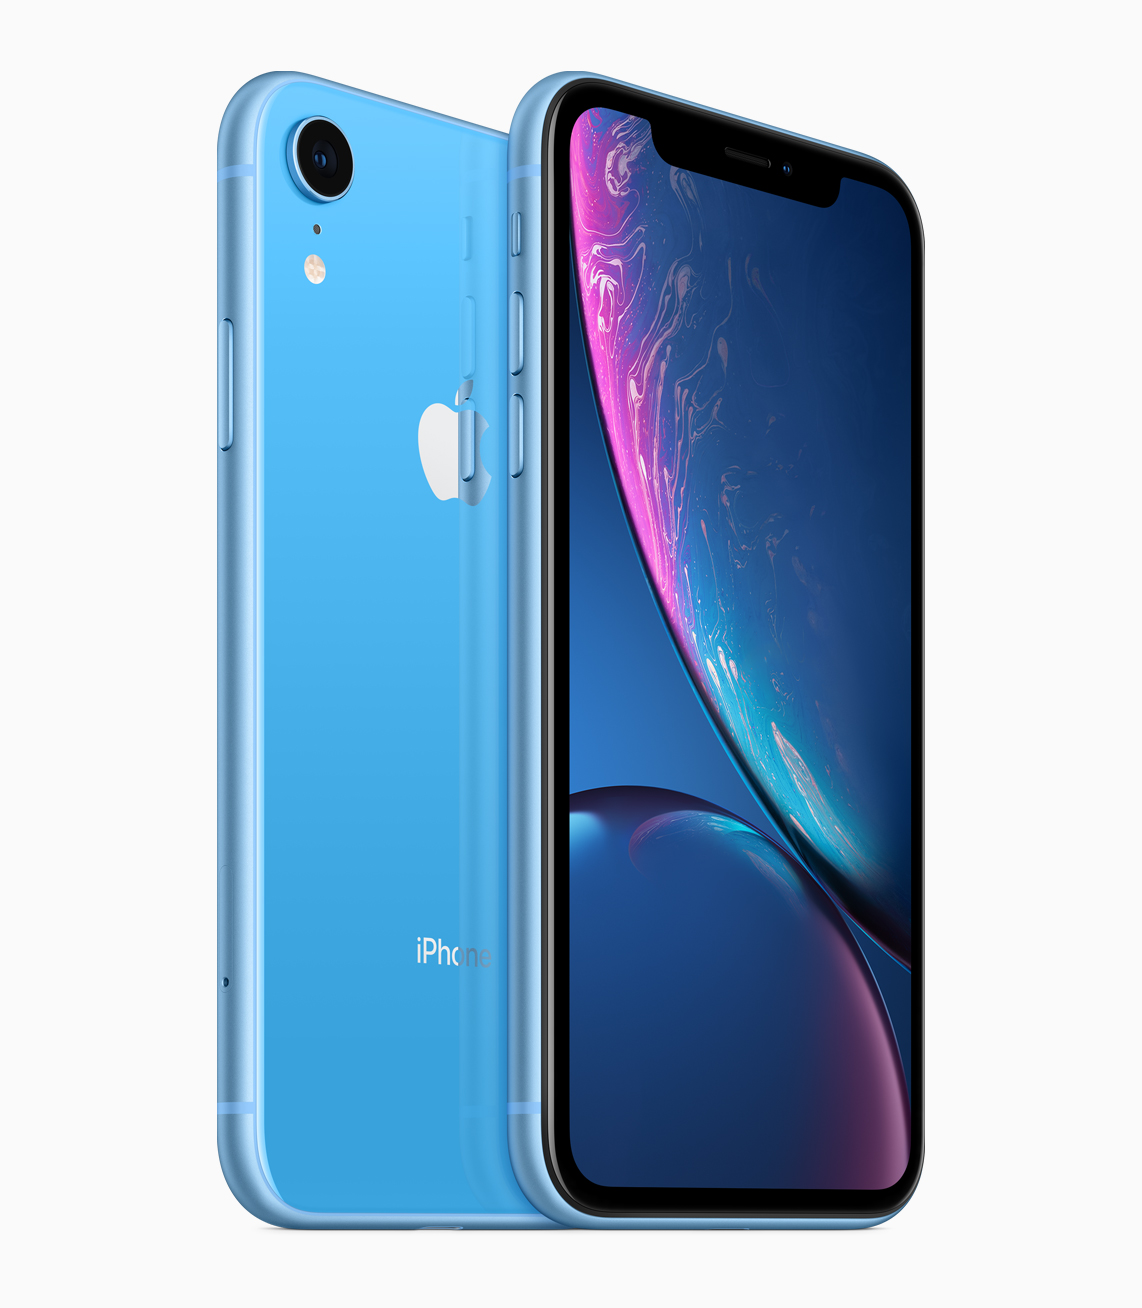 iPhone_XR_blue-back_09122018.jpg